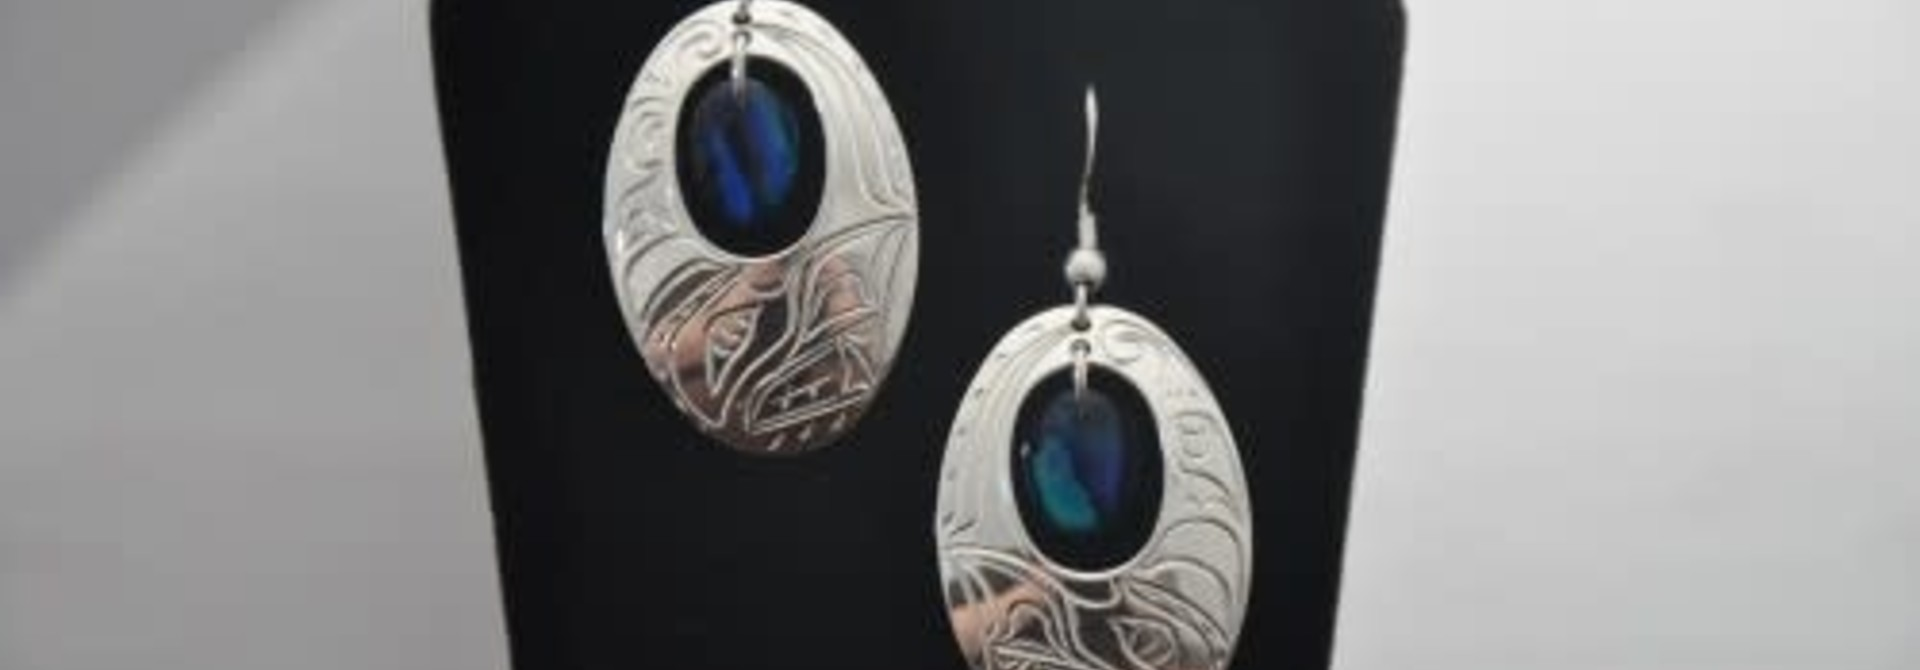 Silver Carved Oval Eagle Earrings with Blue Paua Shell by Vincent Henson